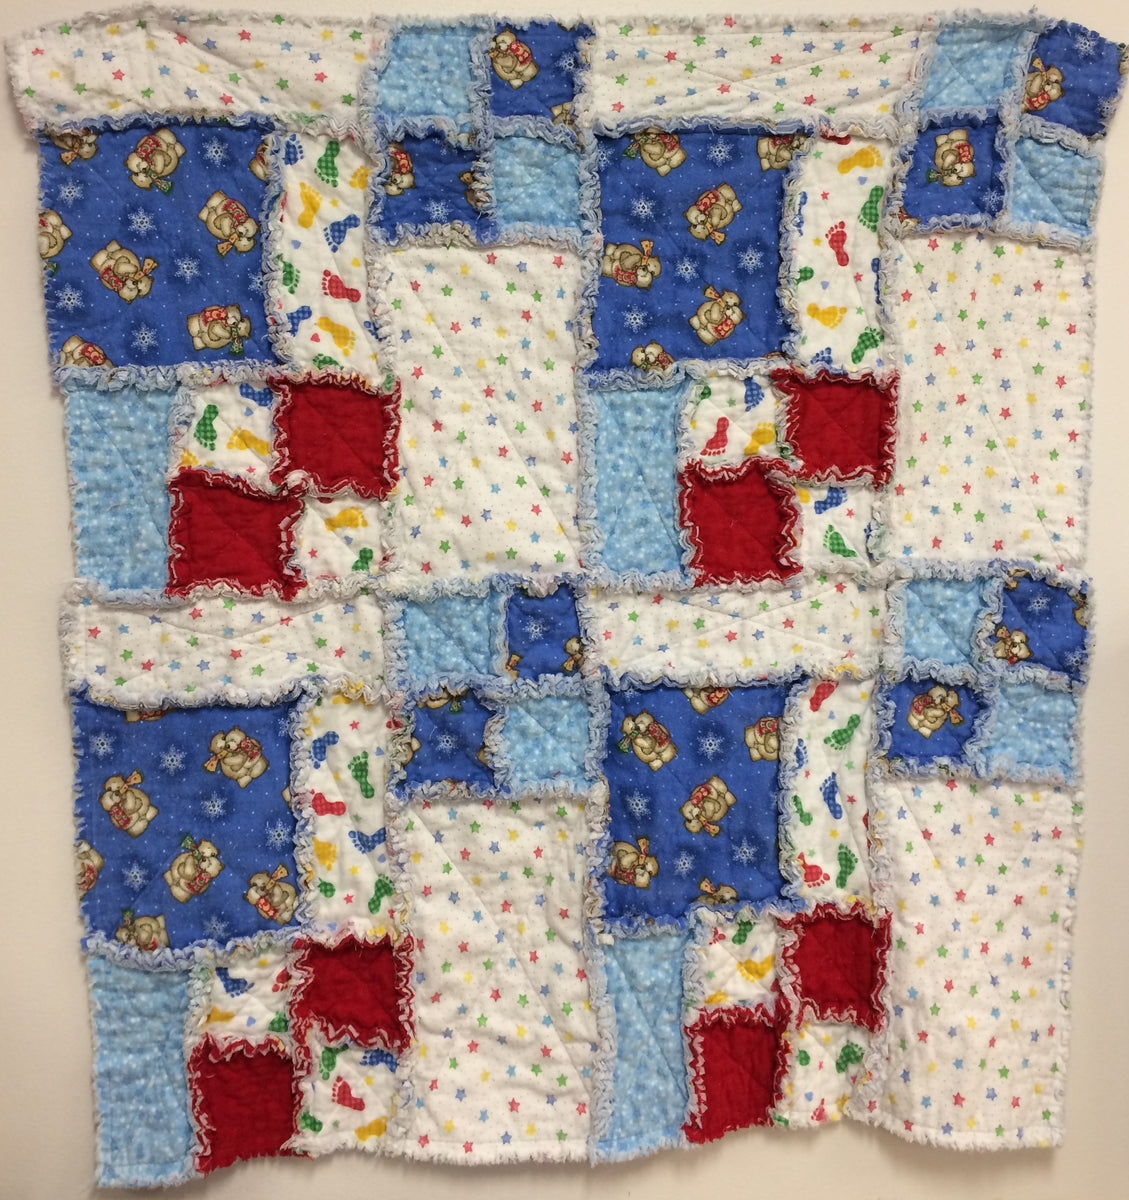 Patchwork Quilt For A Boy: Baby Boy Rag Patchwork Quilt Kit*